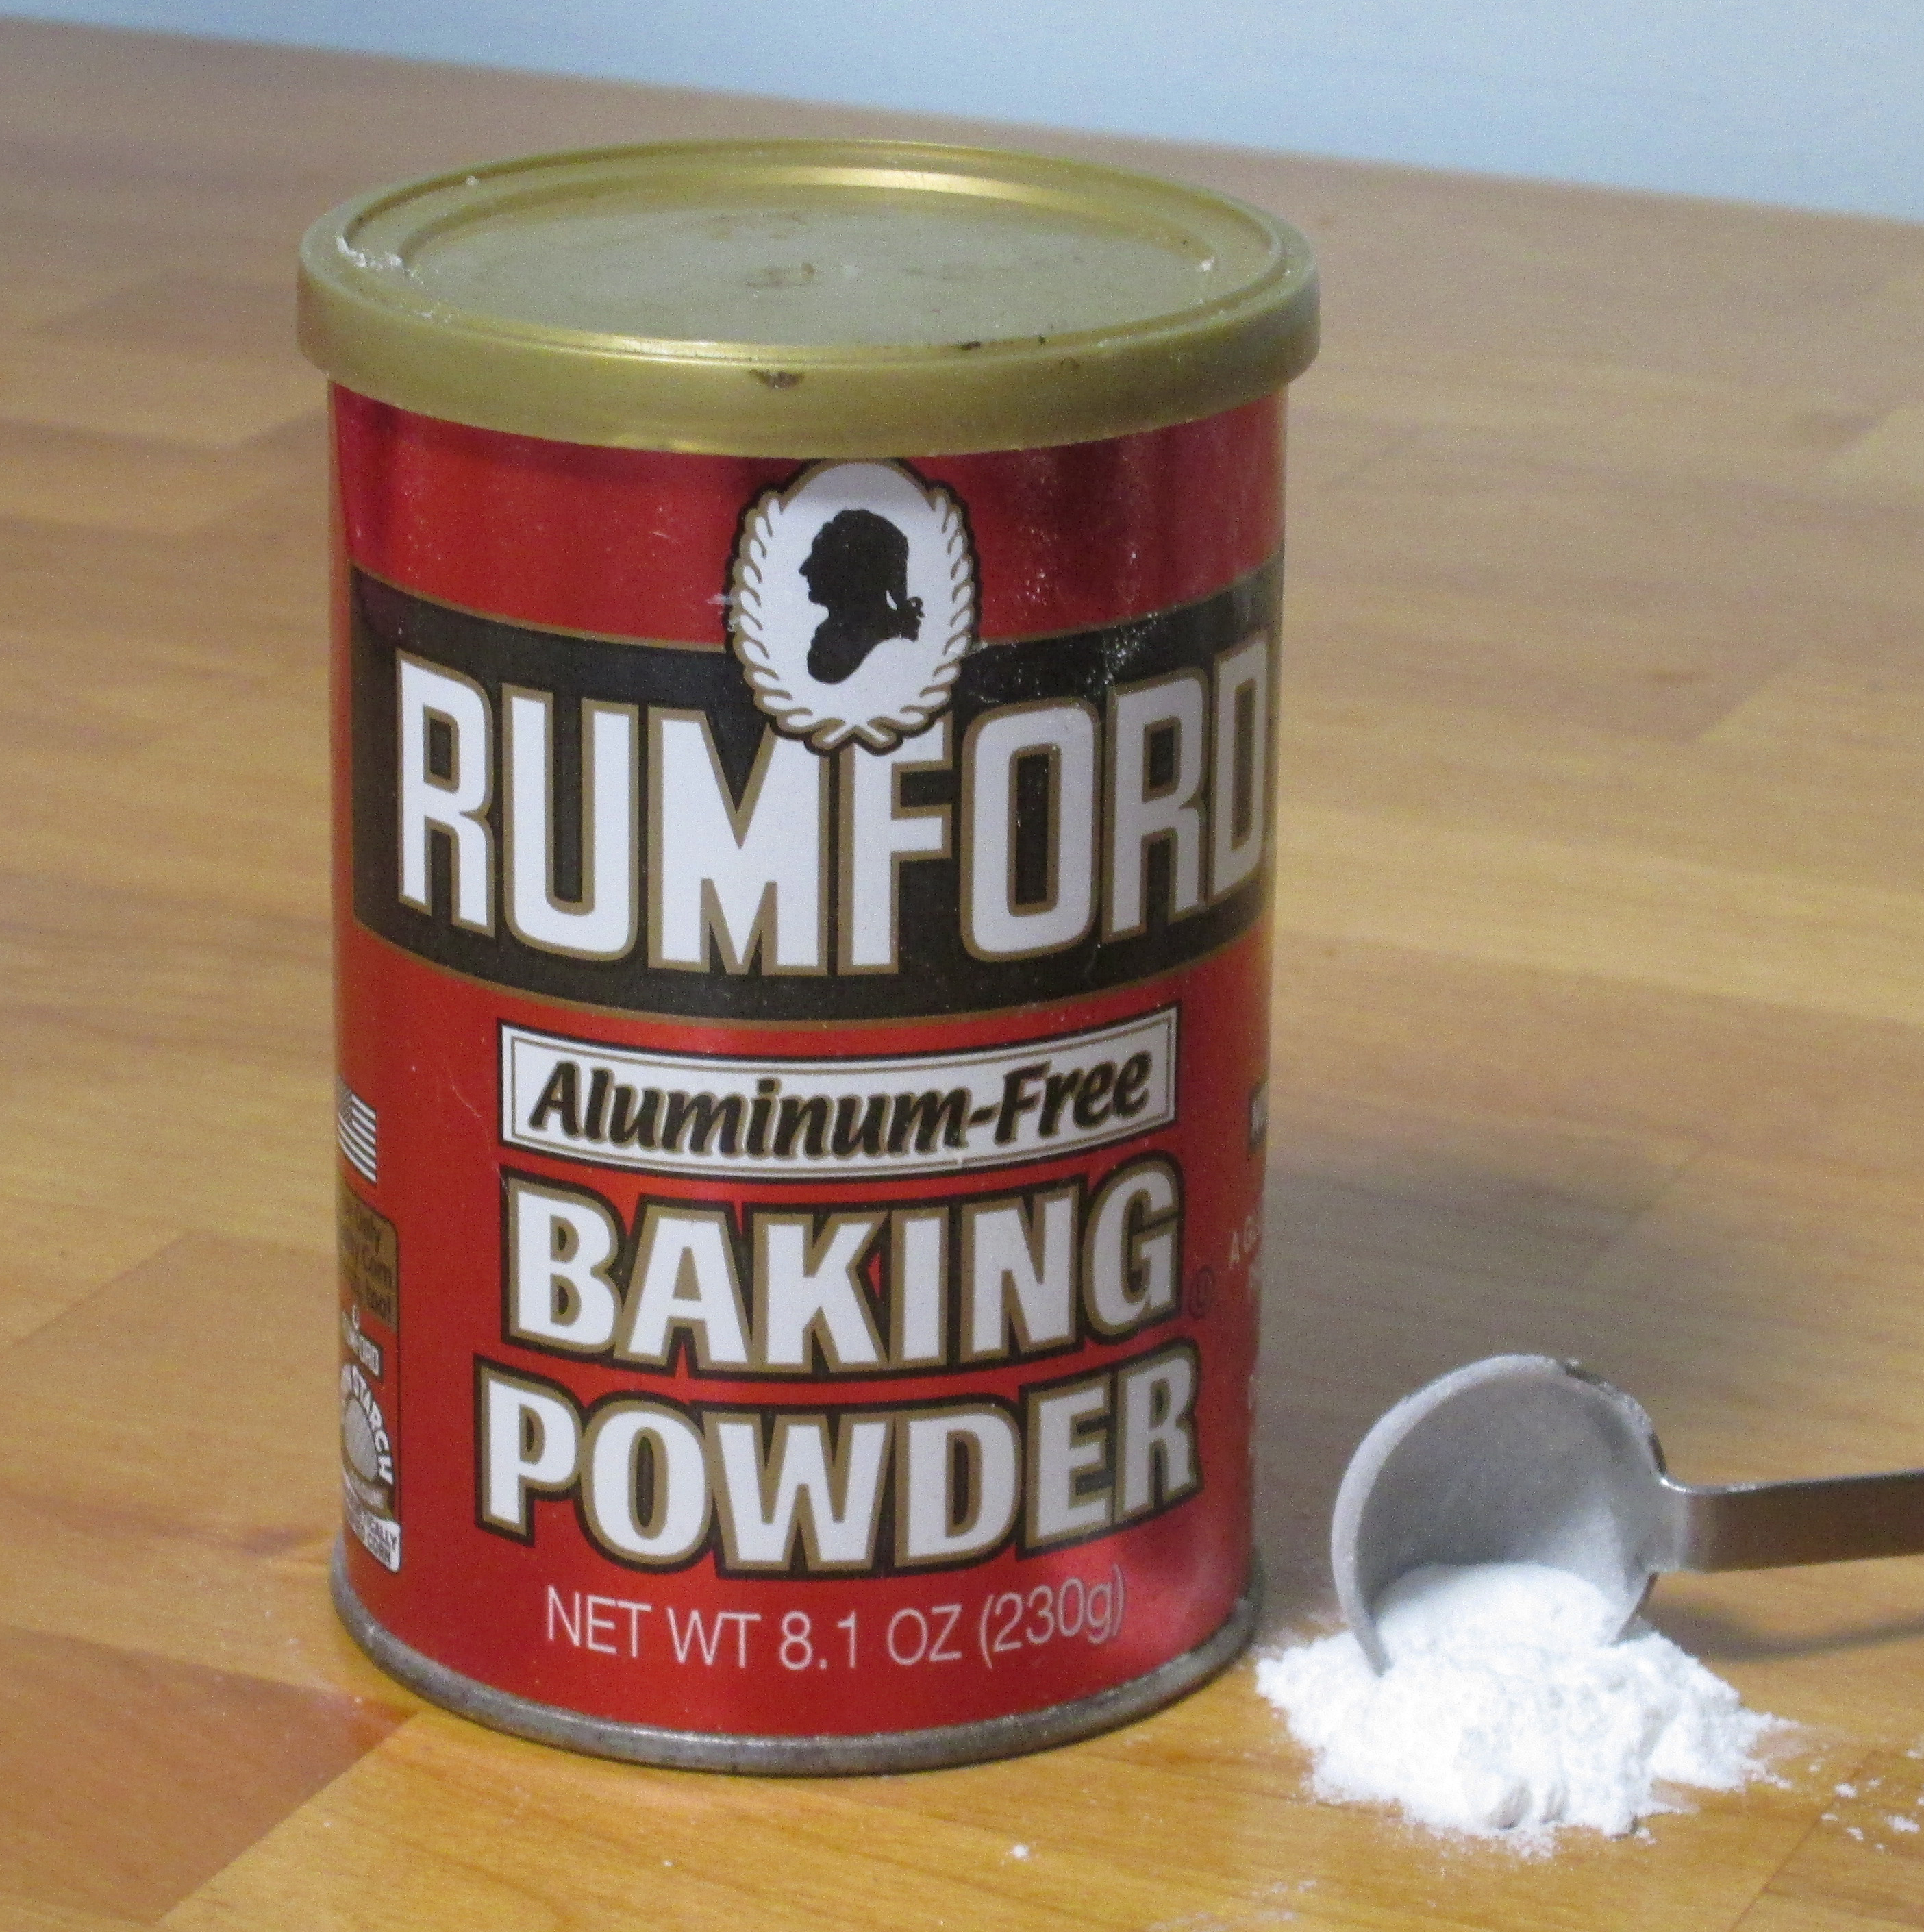 Baking Powder Wikipedia